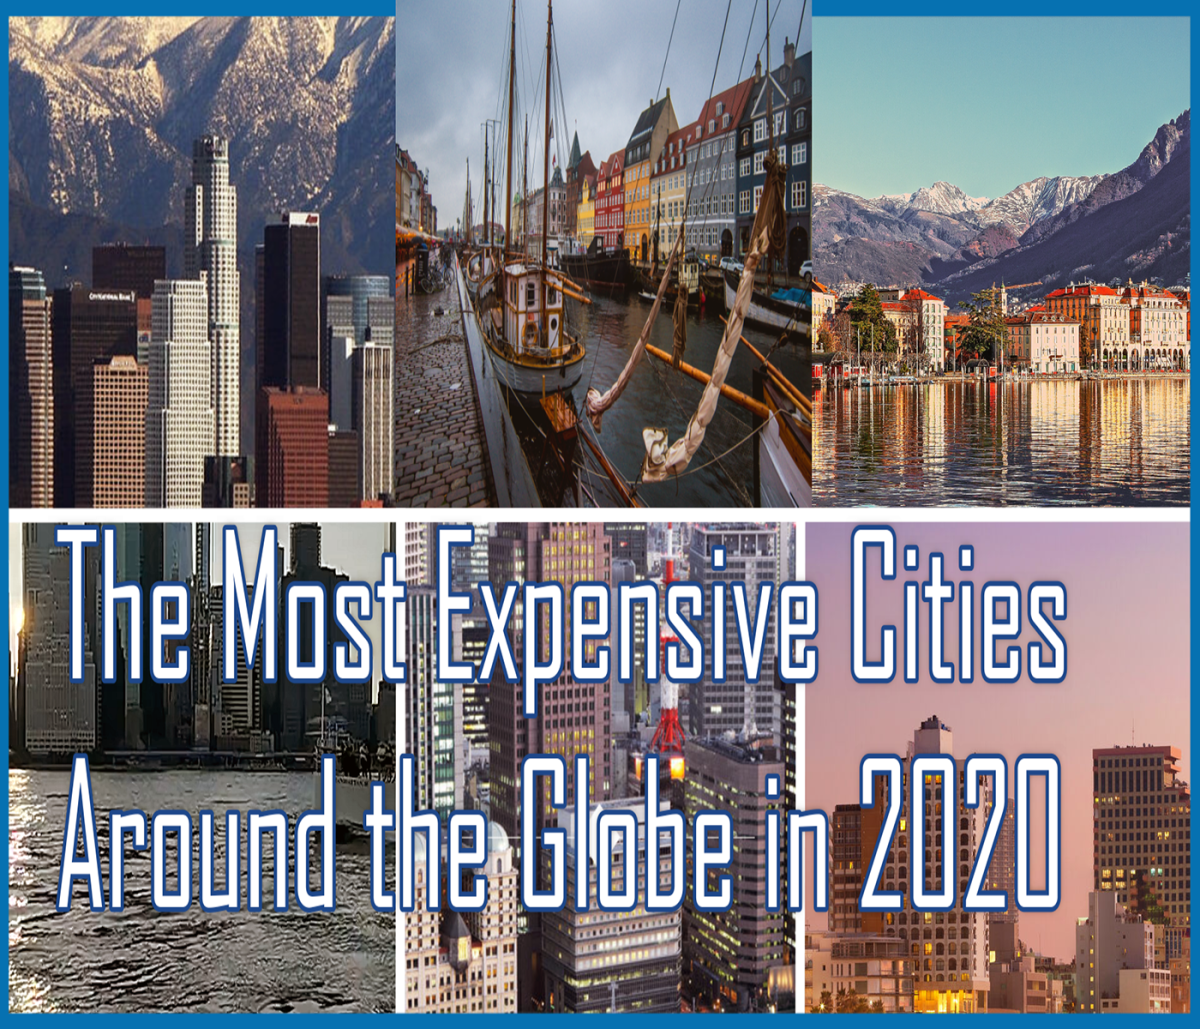 Most Expensive Cities 2020